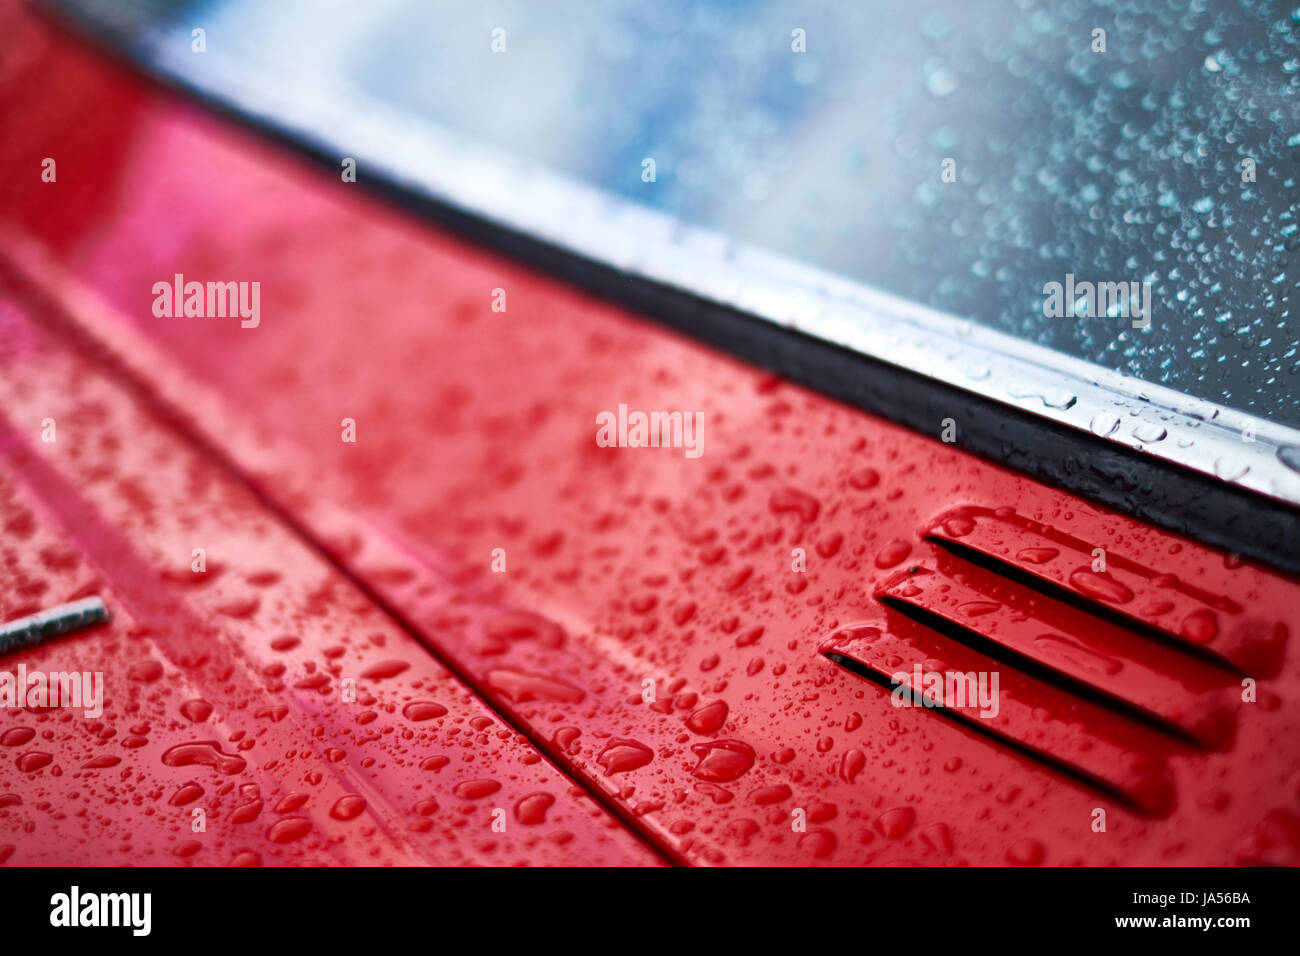 Rain falls on a red car forming water drops, close up of vent and window. Stock Photo